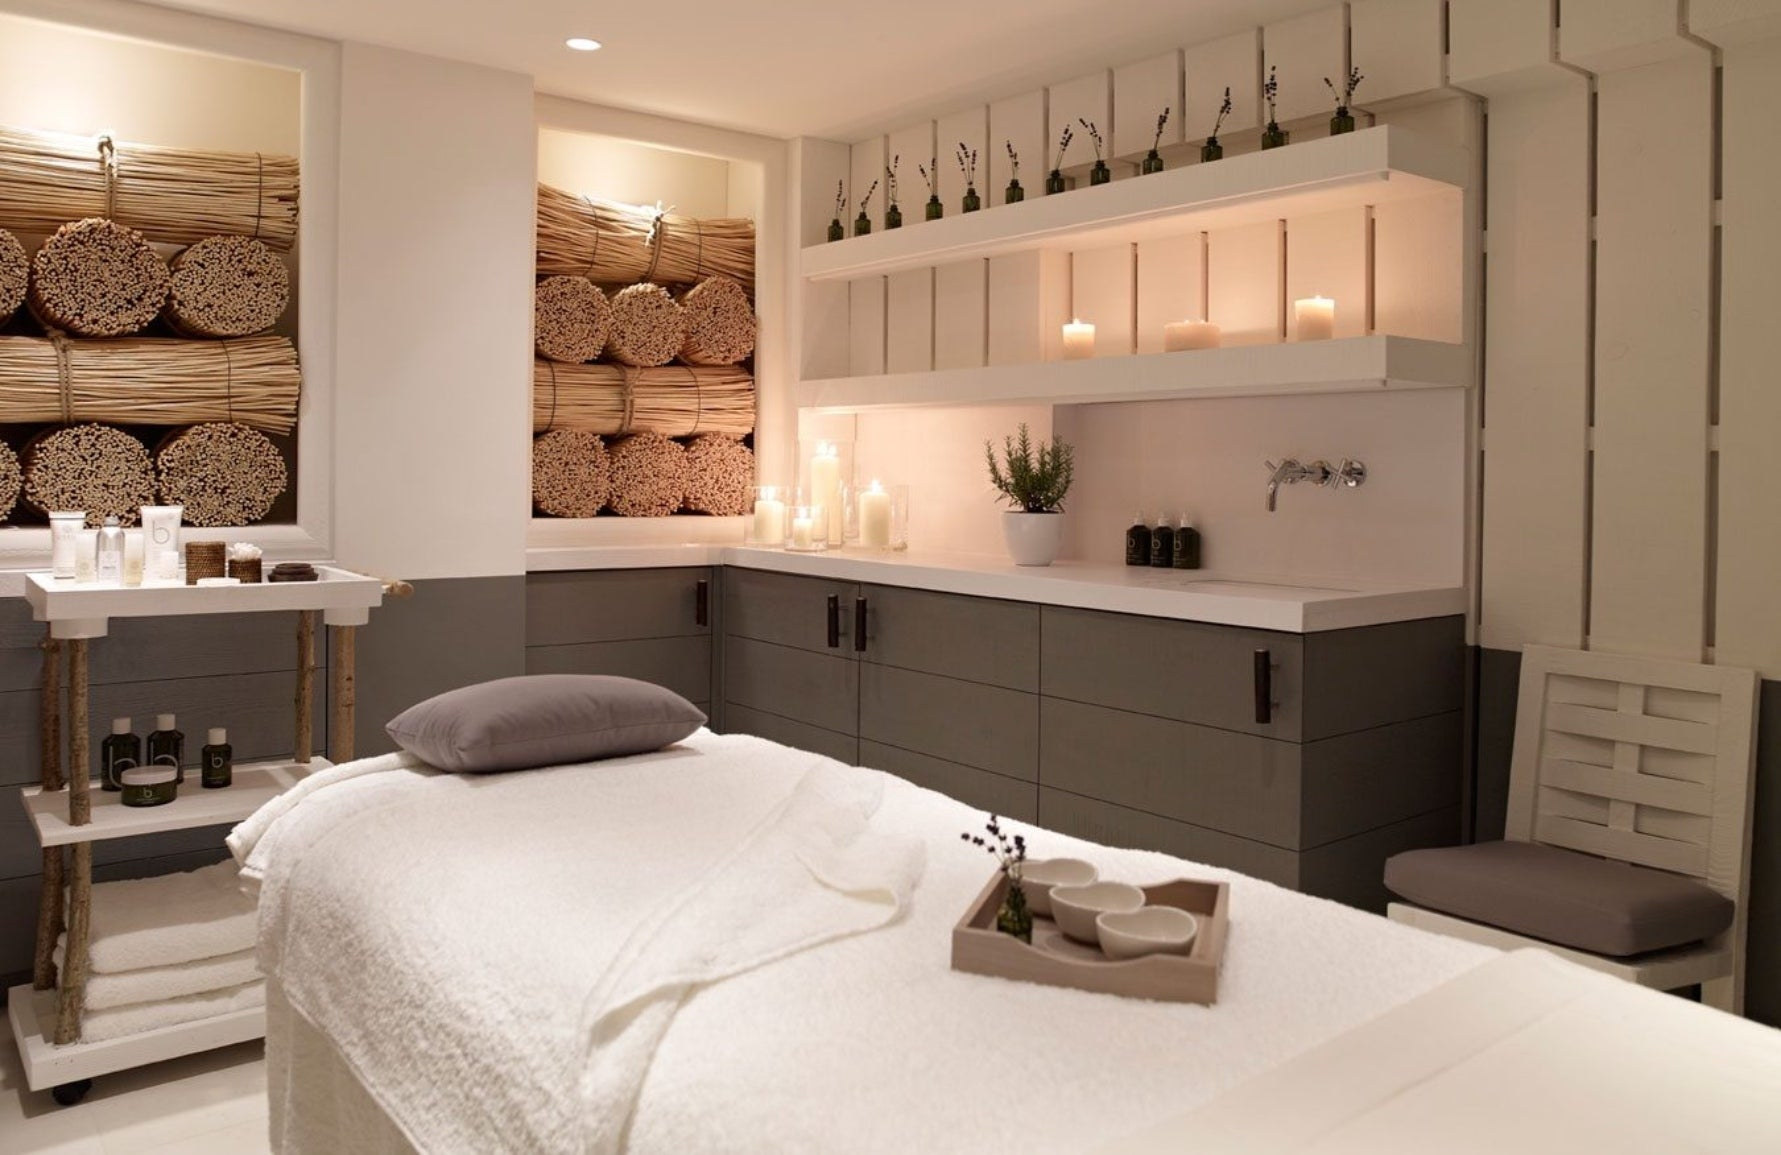 The Bamford Wellness Spa | Read more about Britain's top spa hotels at LuxDeco.com